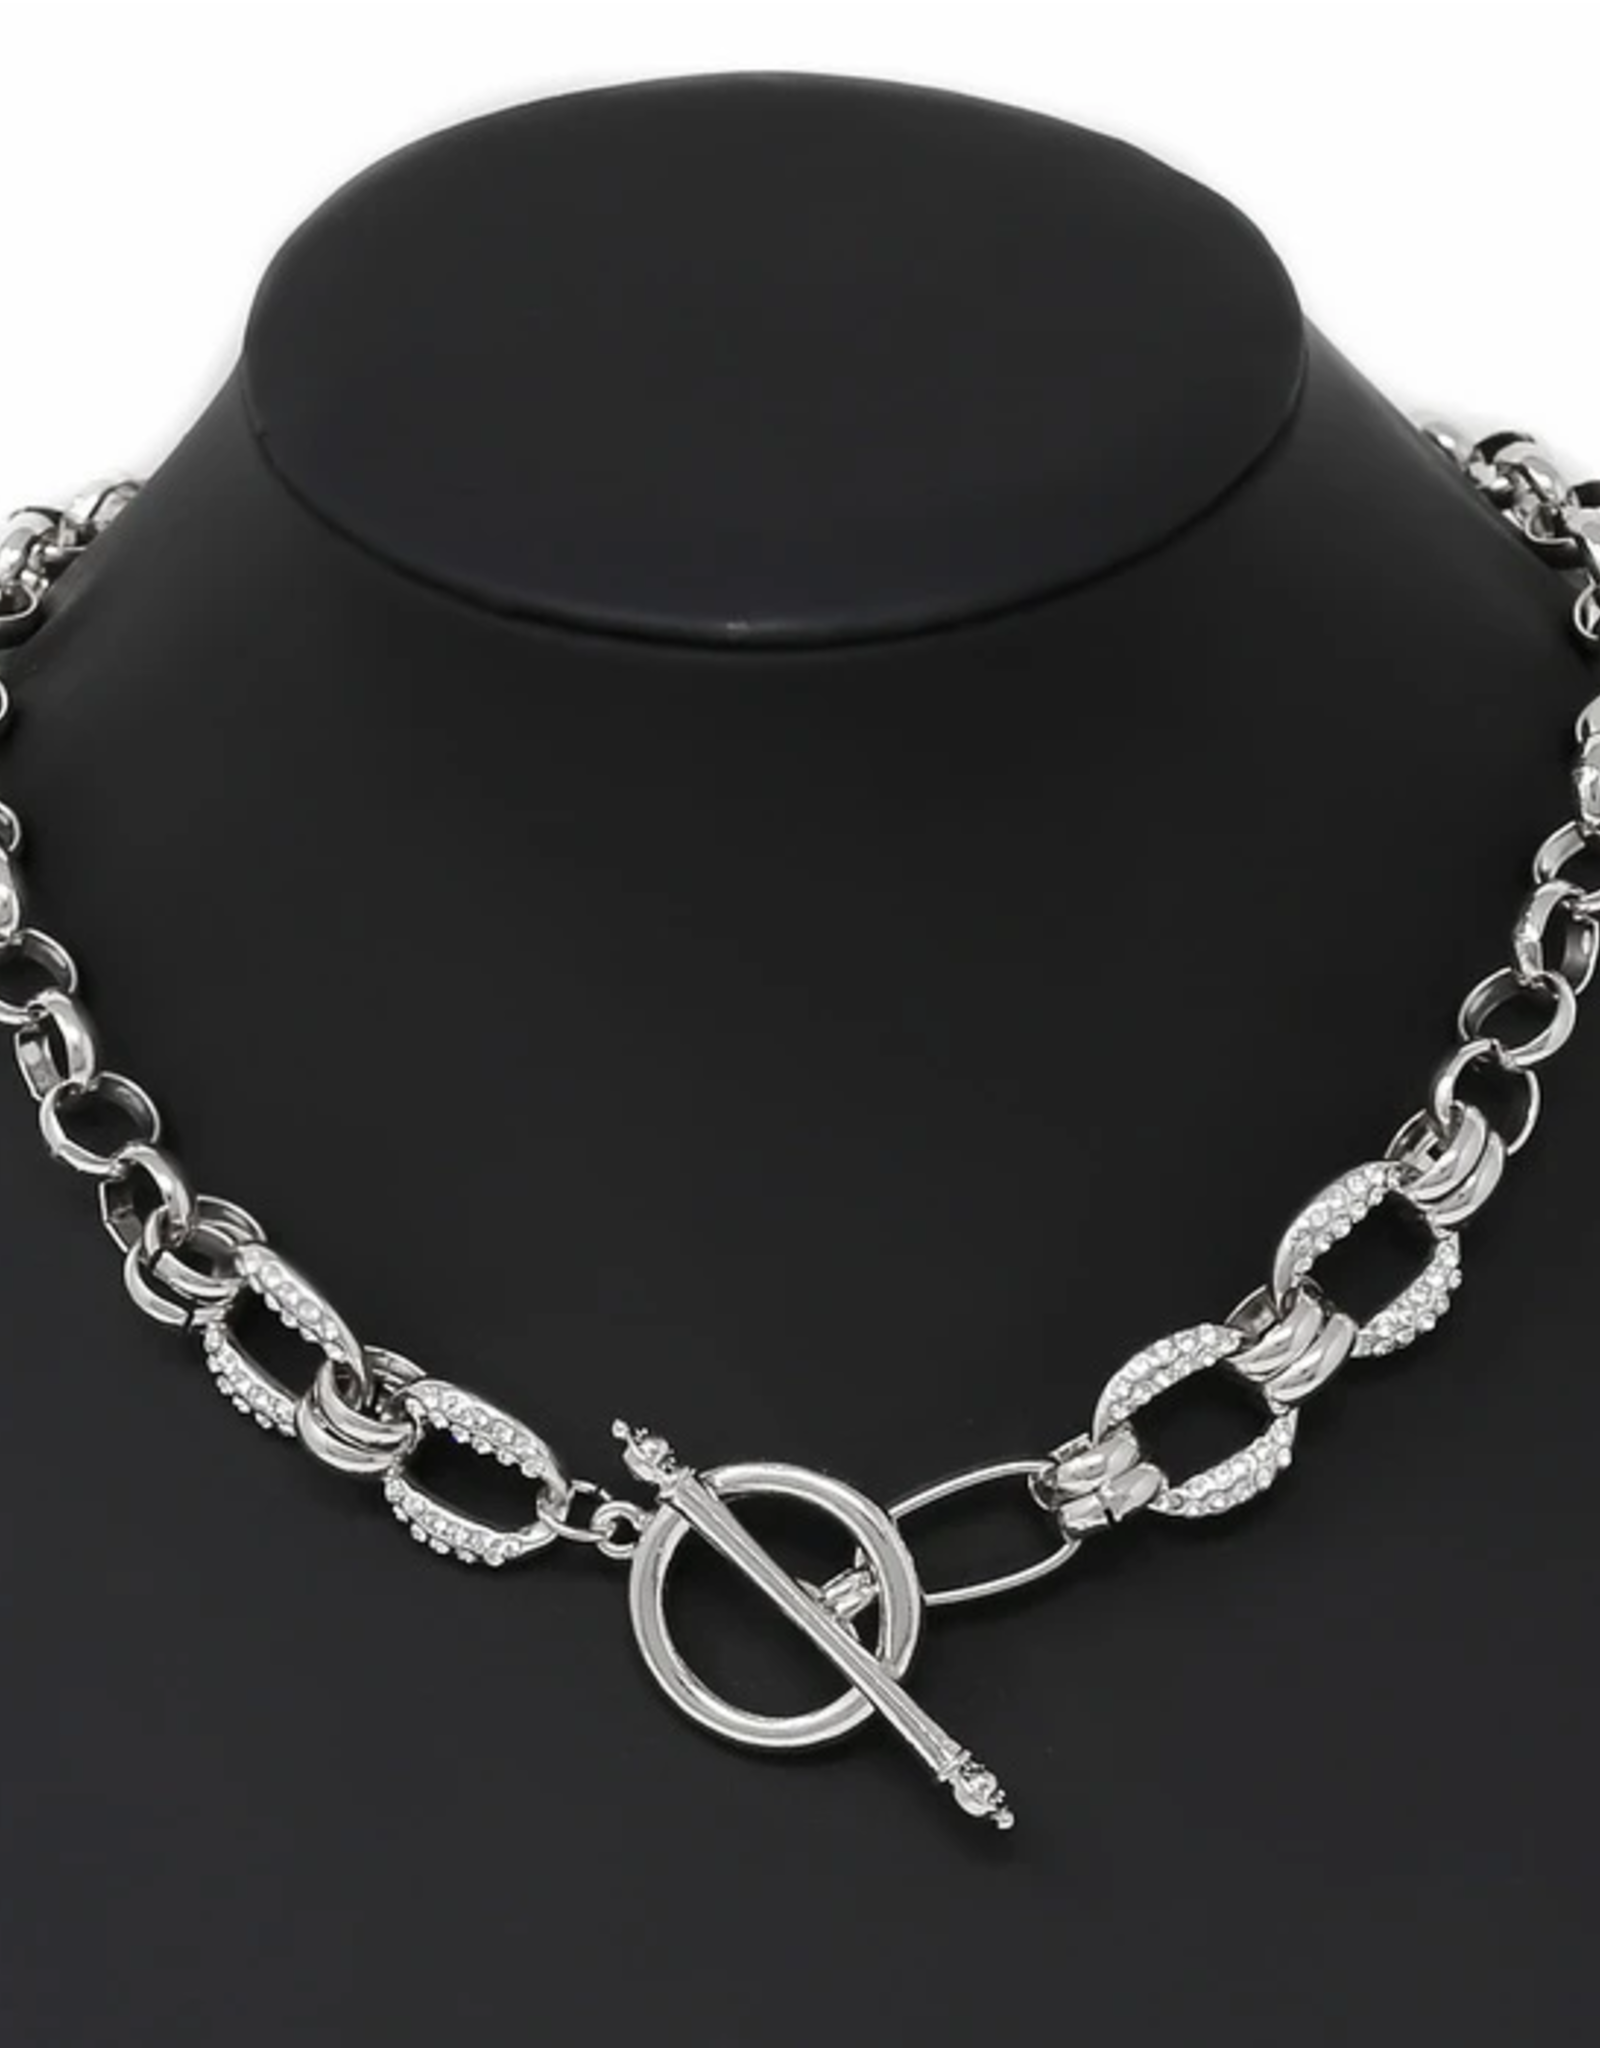 Blue Suede Jewels Rhinestone Pave Linked Chain Toggle Necklace